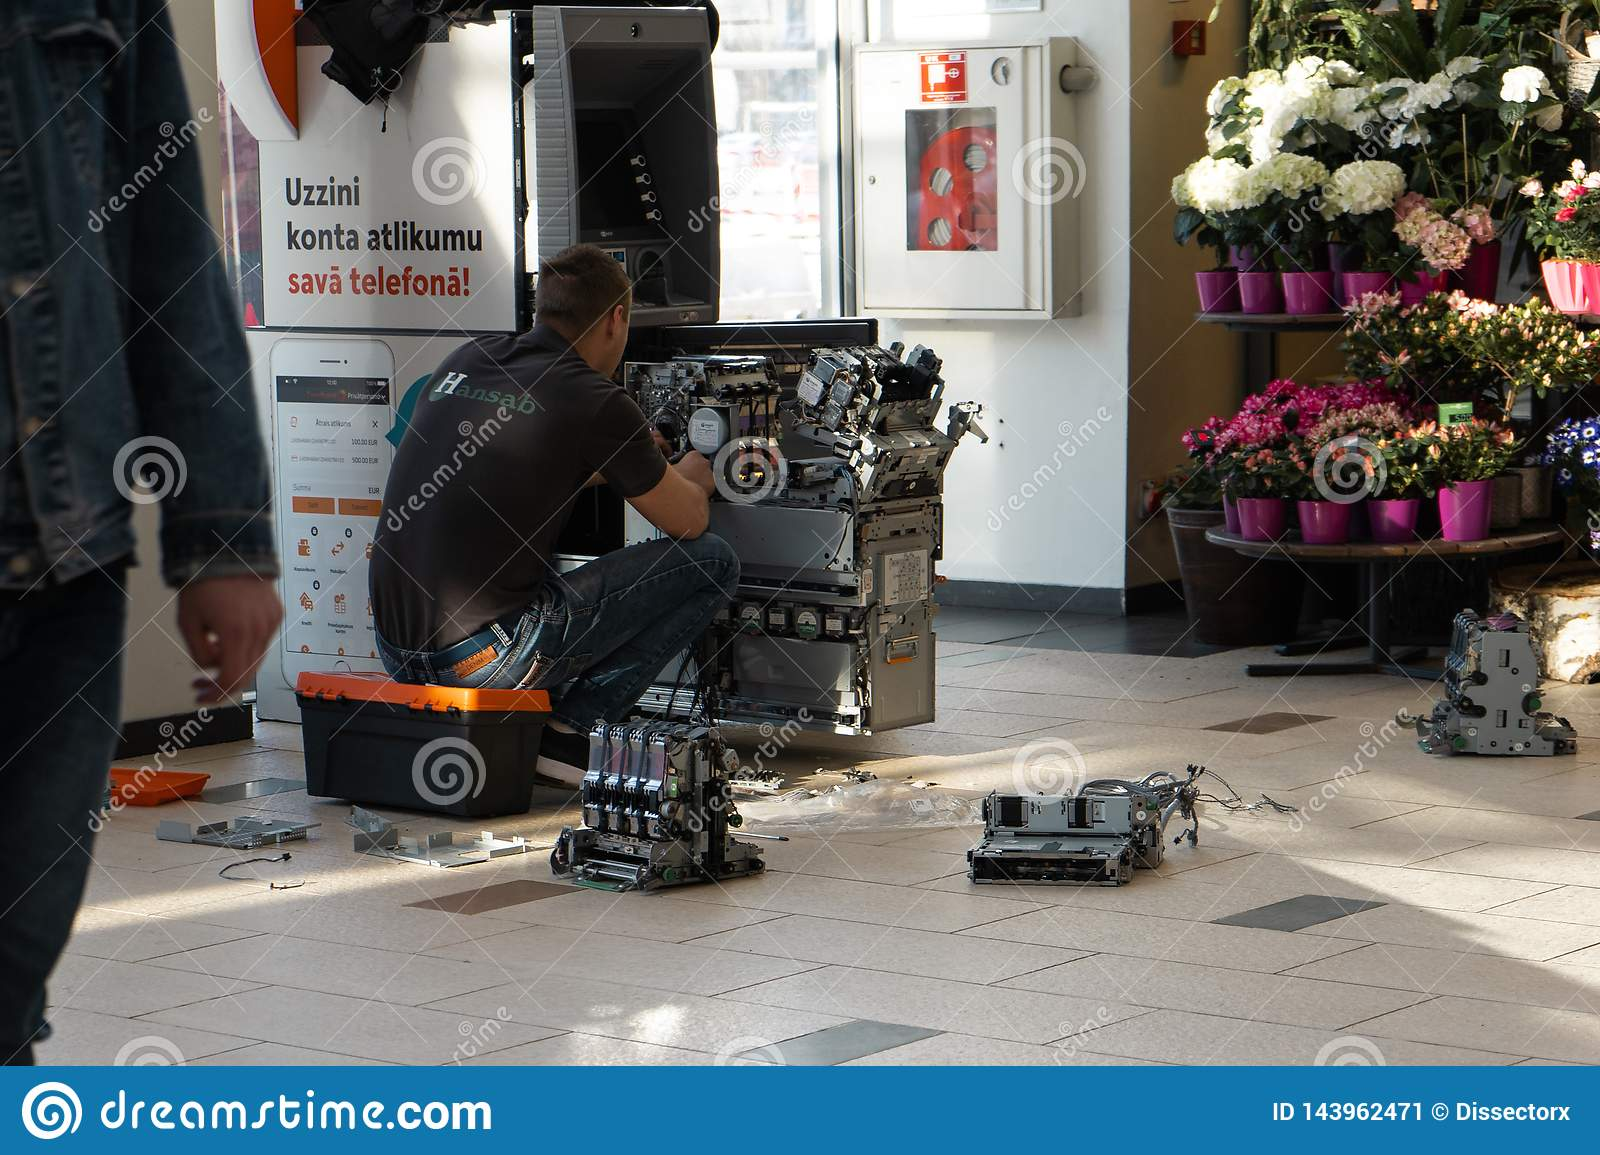 RIGA, LATVIA - APRIL 4, 2019: Broken ATM machine is being repaired - Bank are in a shopping centre